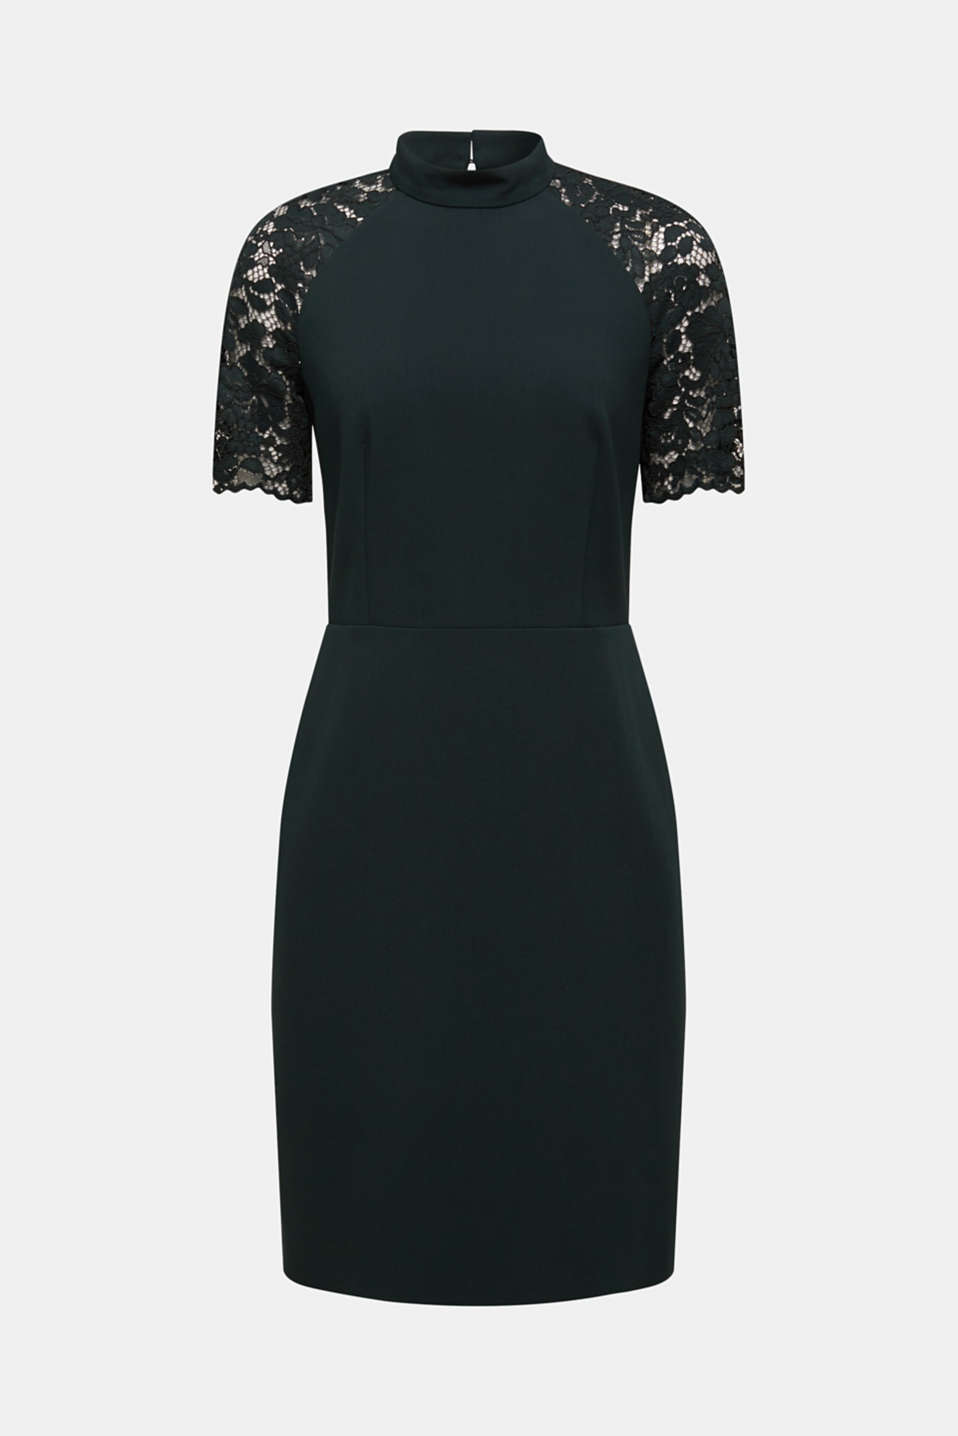 Stretch dress with band collar and lace, DARK TEAL GREEN, detail image number 6